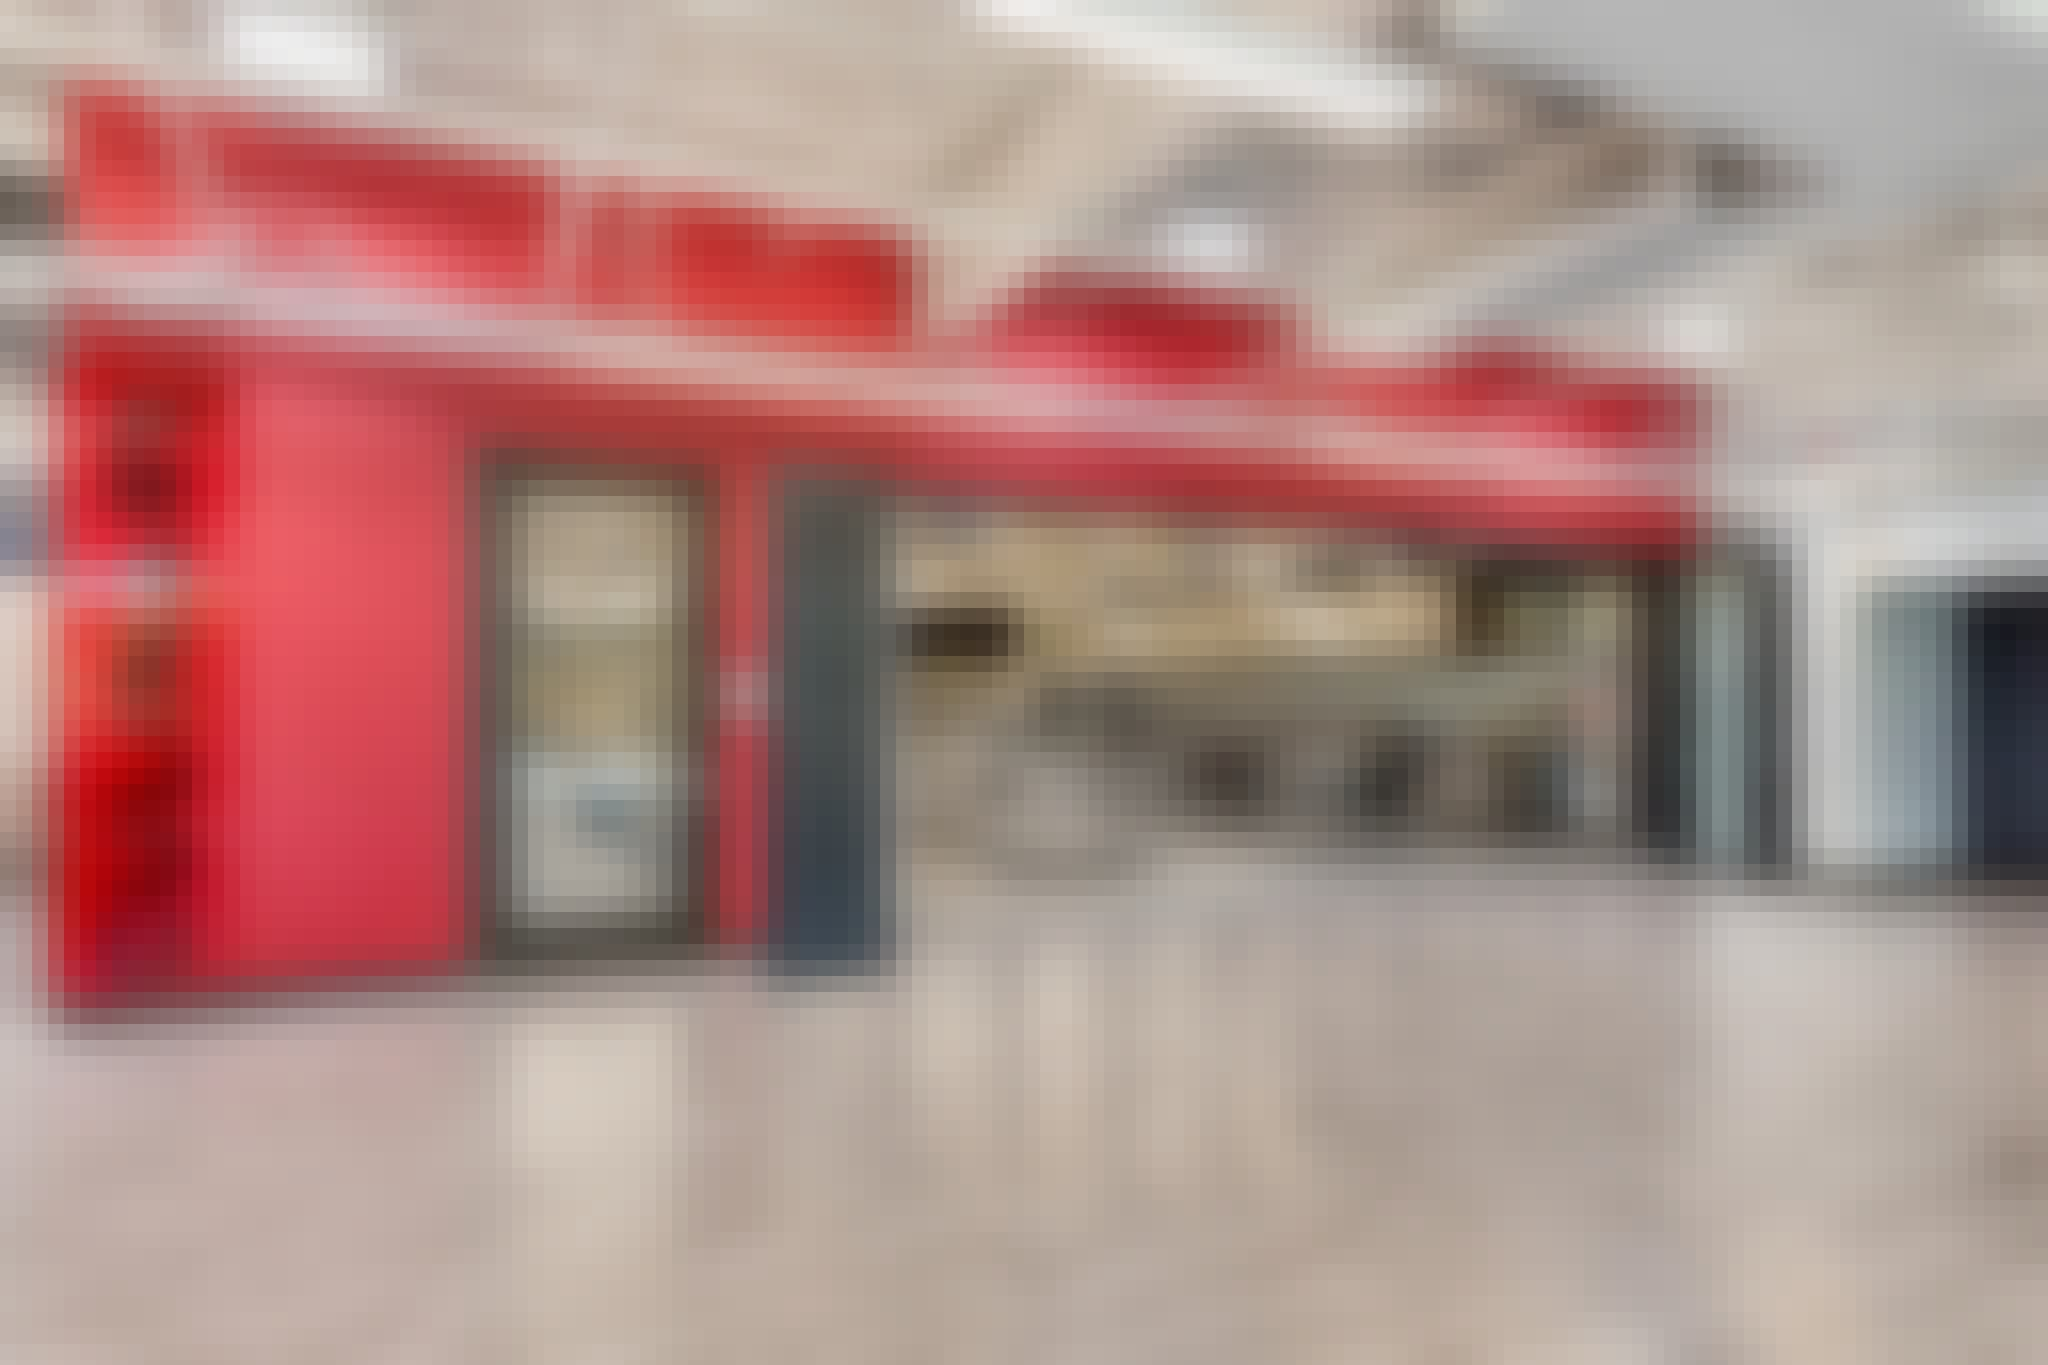 career and technical education center for high school students to learn with folding glass walls